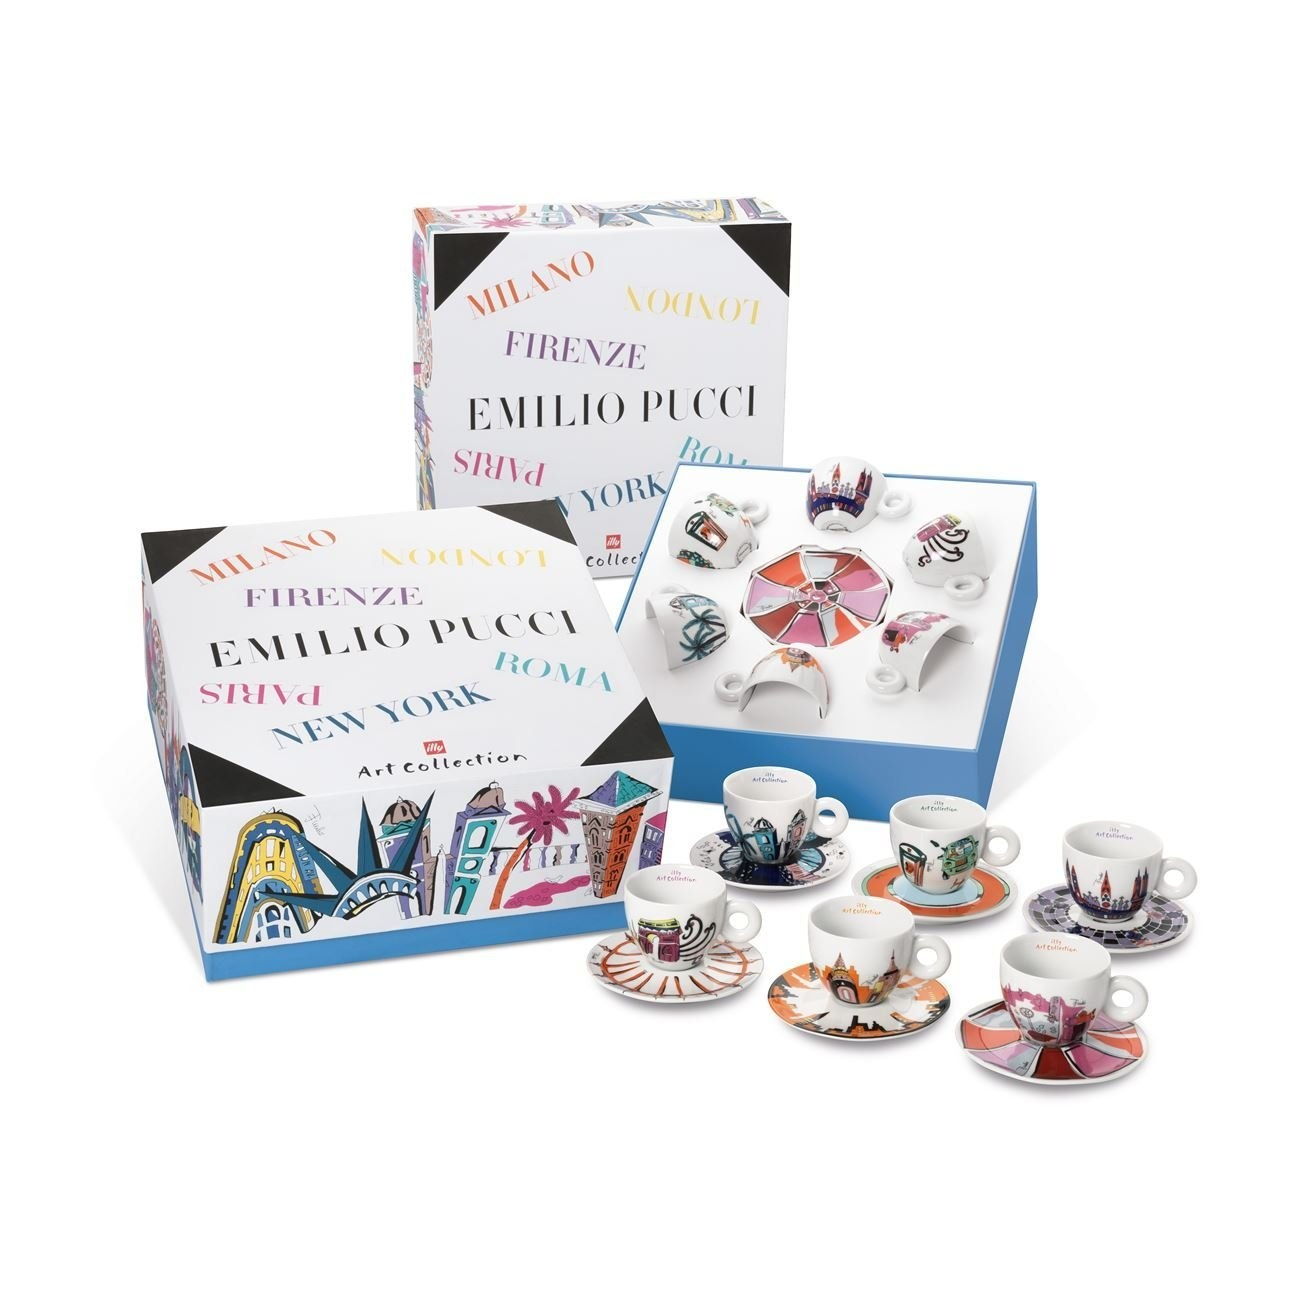 Cappuccino Cups Australia Illy Art Collection Coffee Set By Emilio Pucci 6 Cappuccino Cup 6 Saucers